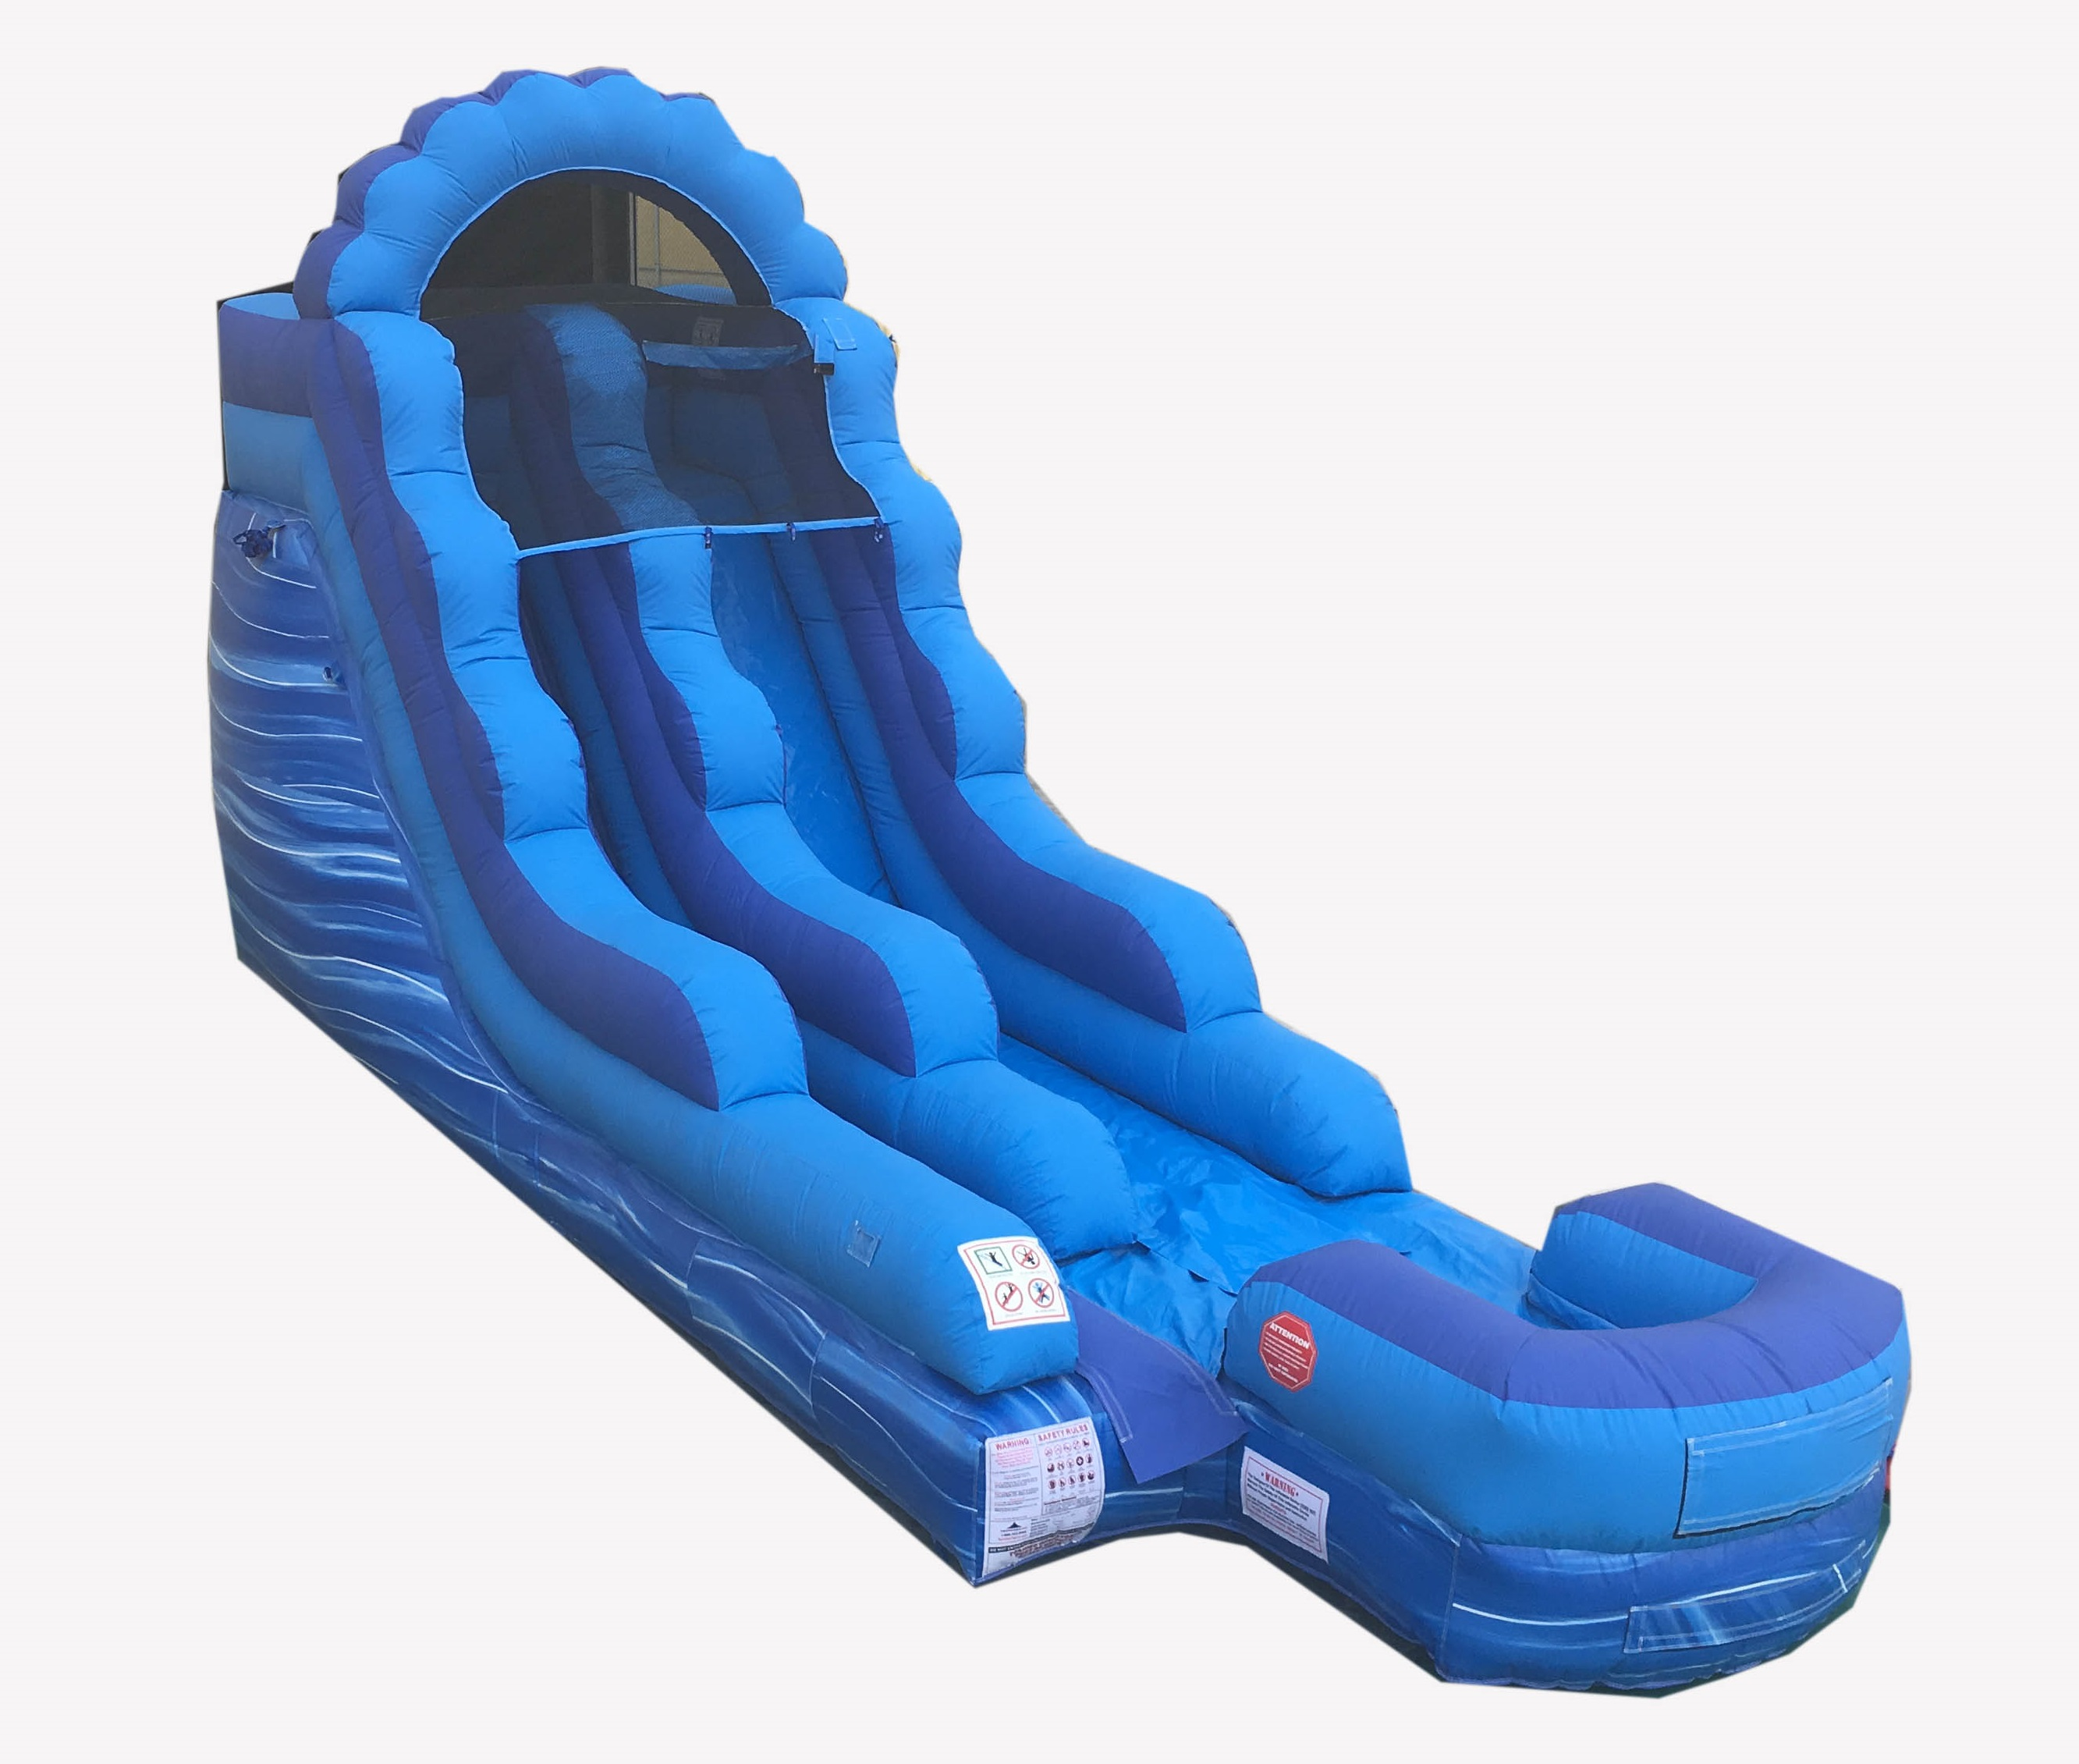 Pogo 15' Blue Marble Commercial Inflatable Waterslide with Blower Kids Bouncy Jumper by Pogo Bounce House